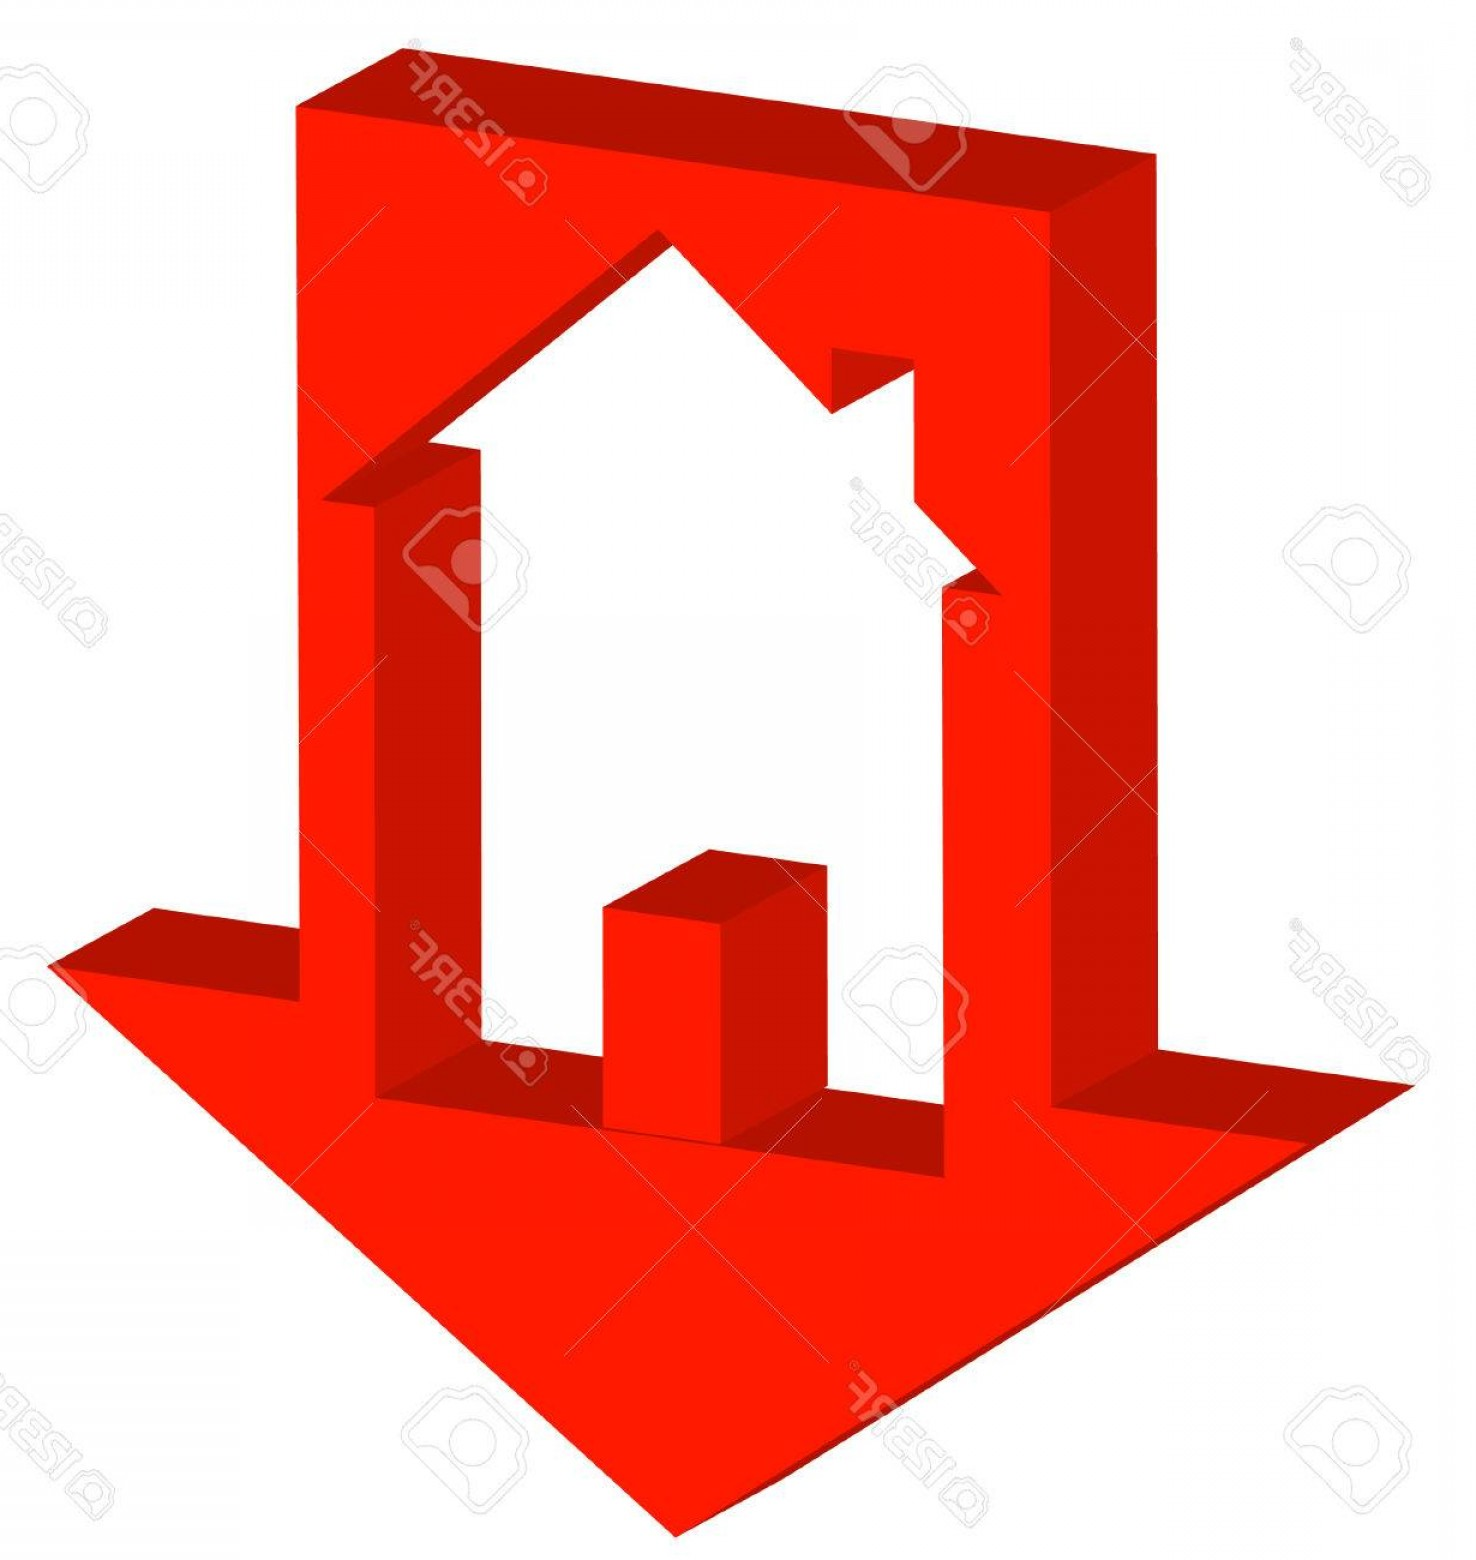 Equal Housing Vector: Photod Red Down Arrow With House Inside Crashing Housing Market Vector